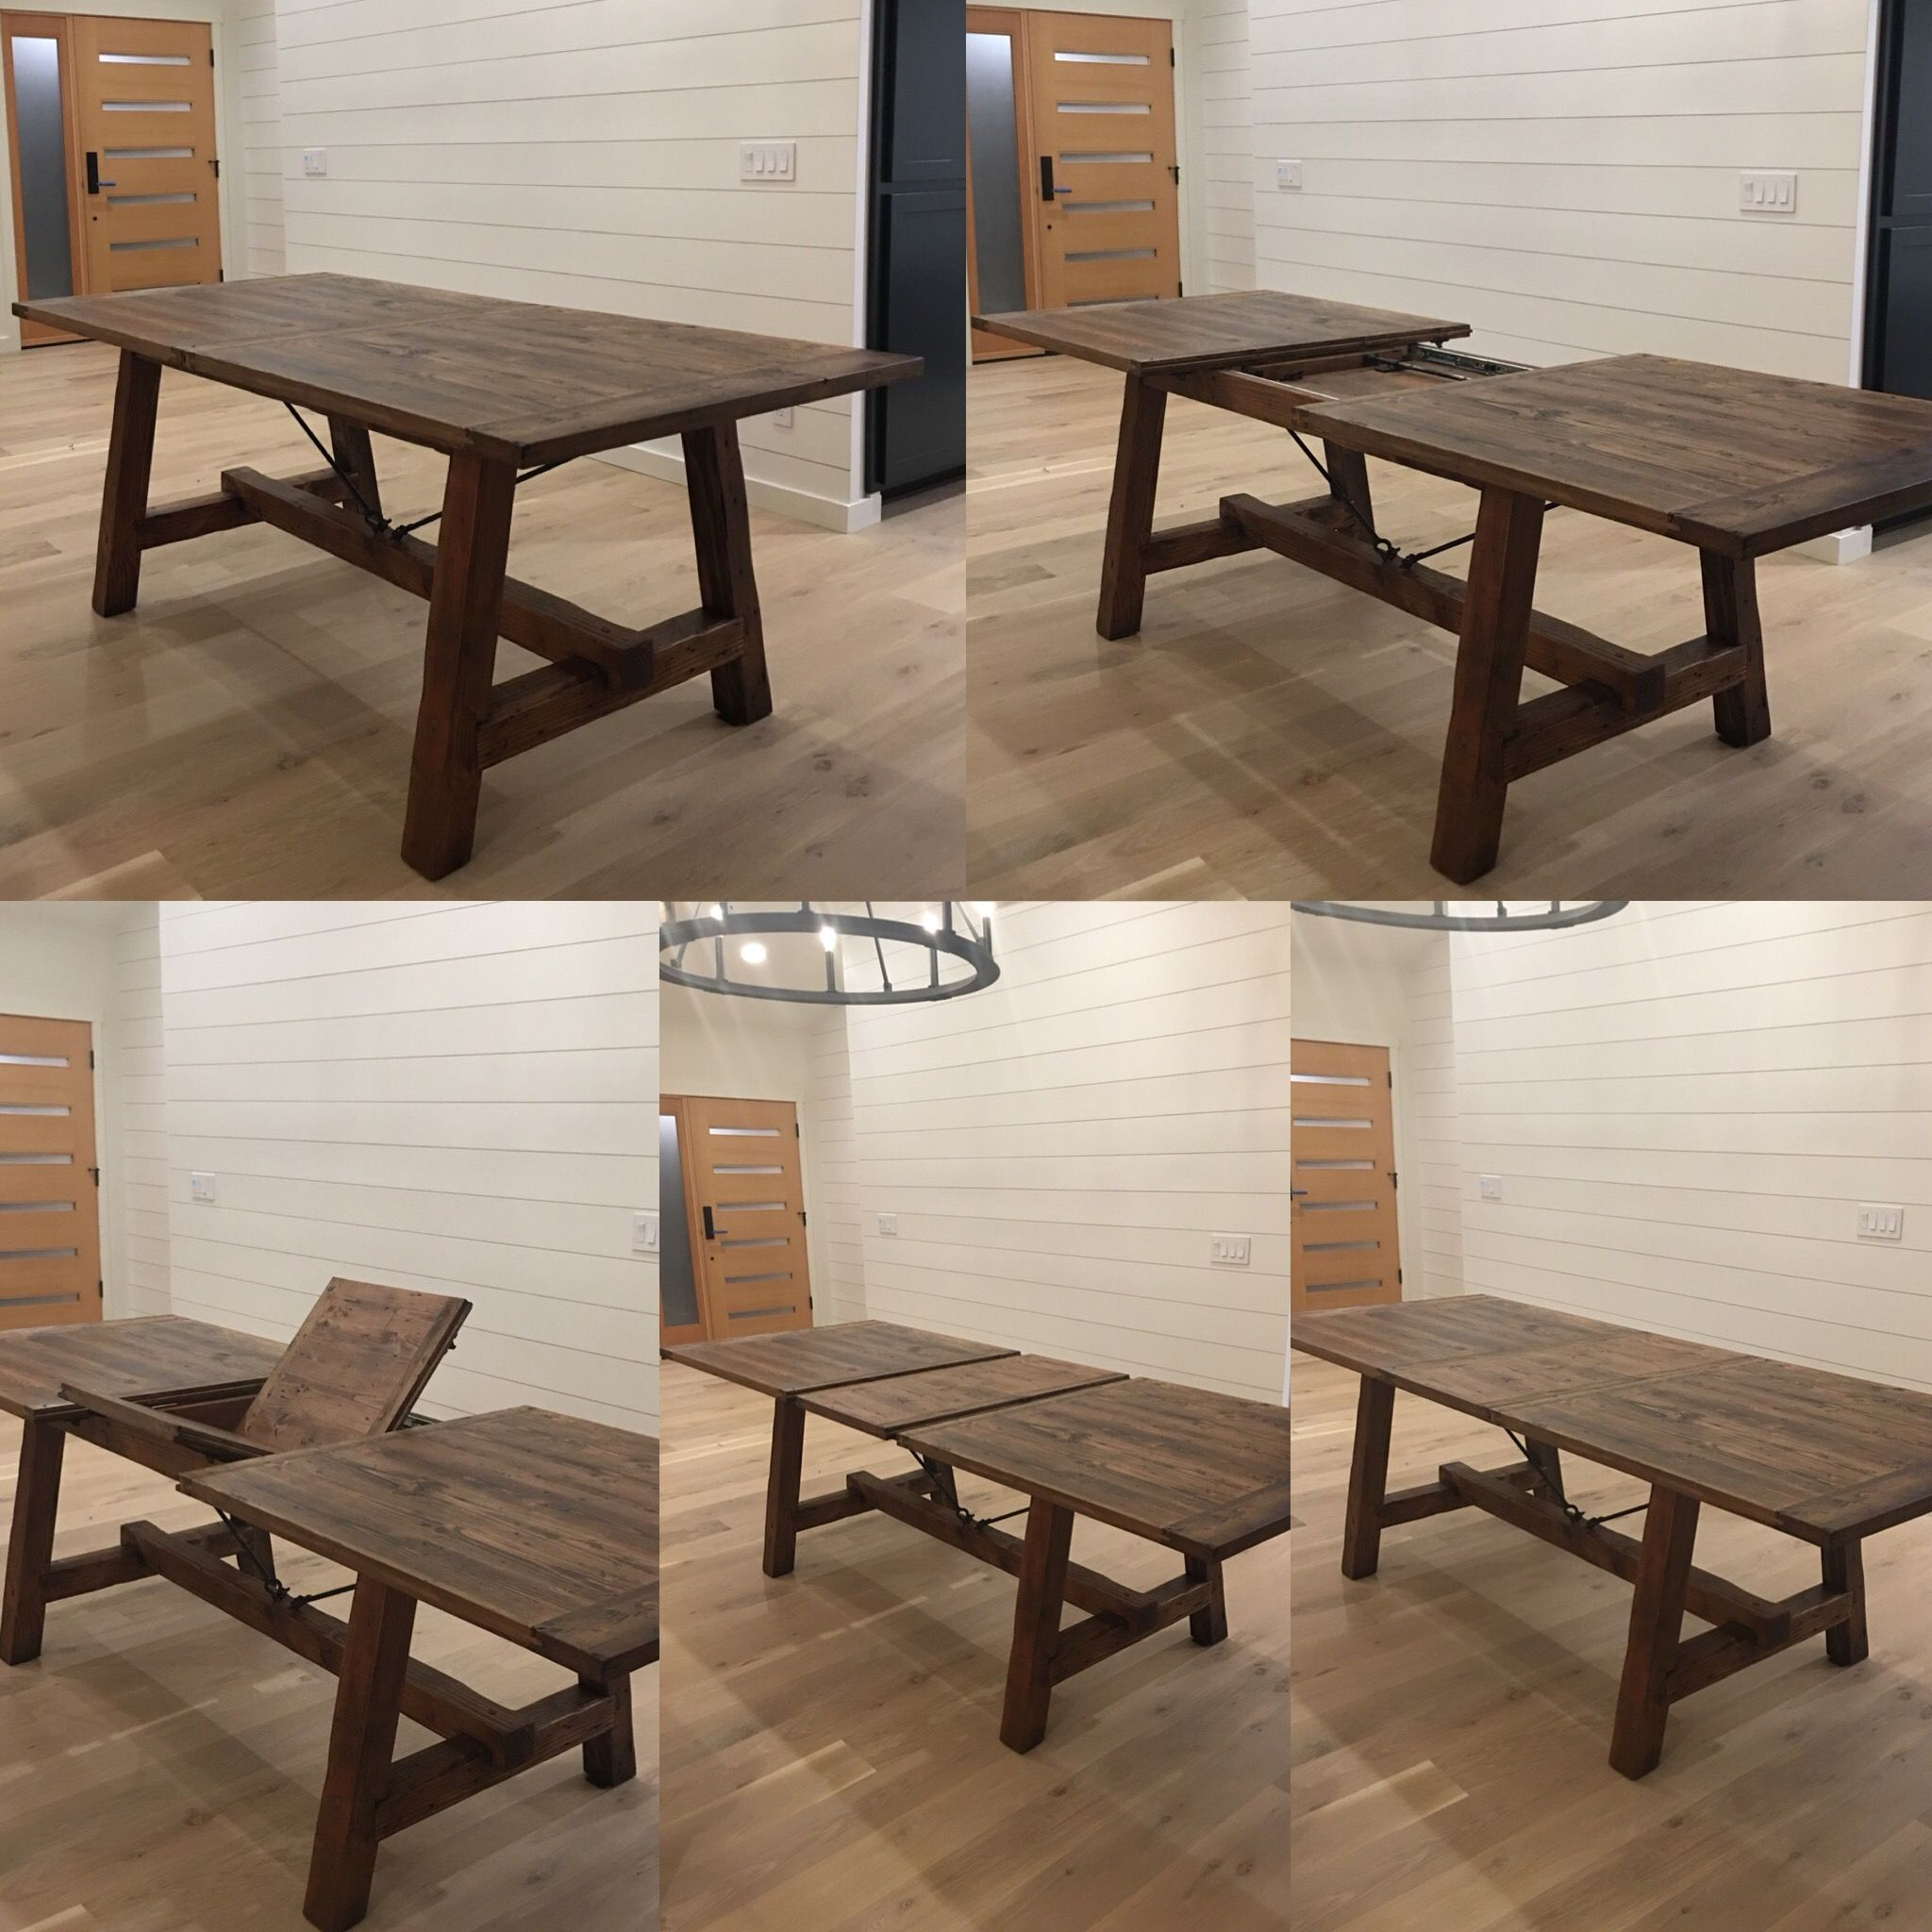 Custom Expanding Farm Table With Hidden Leaf By 22nd Supply Co